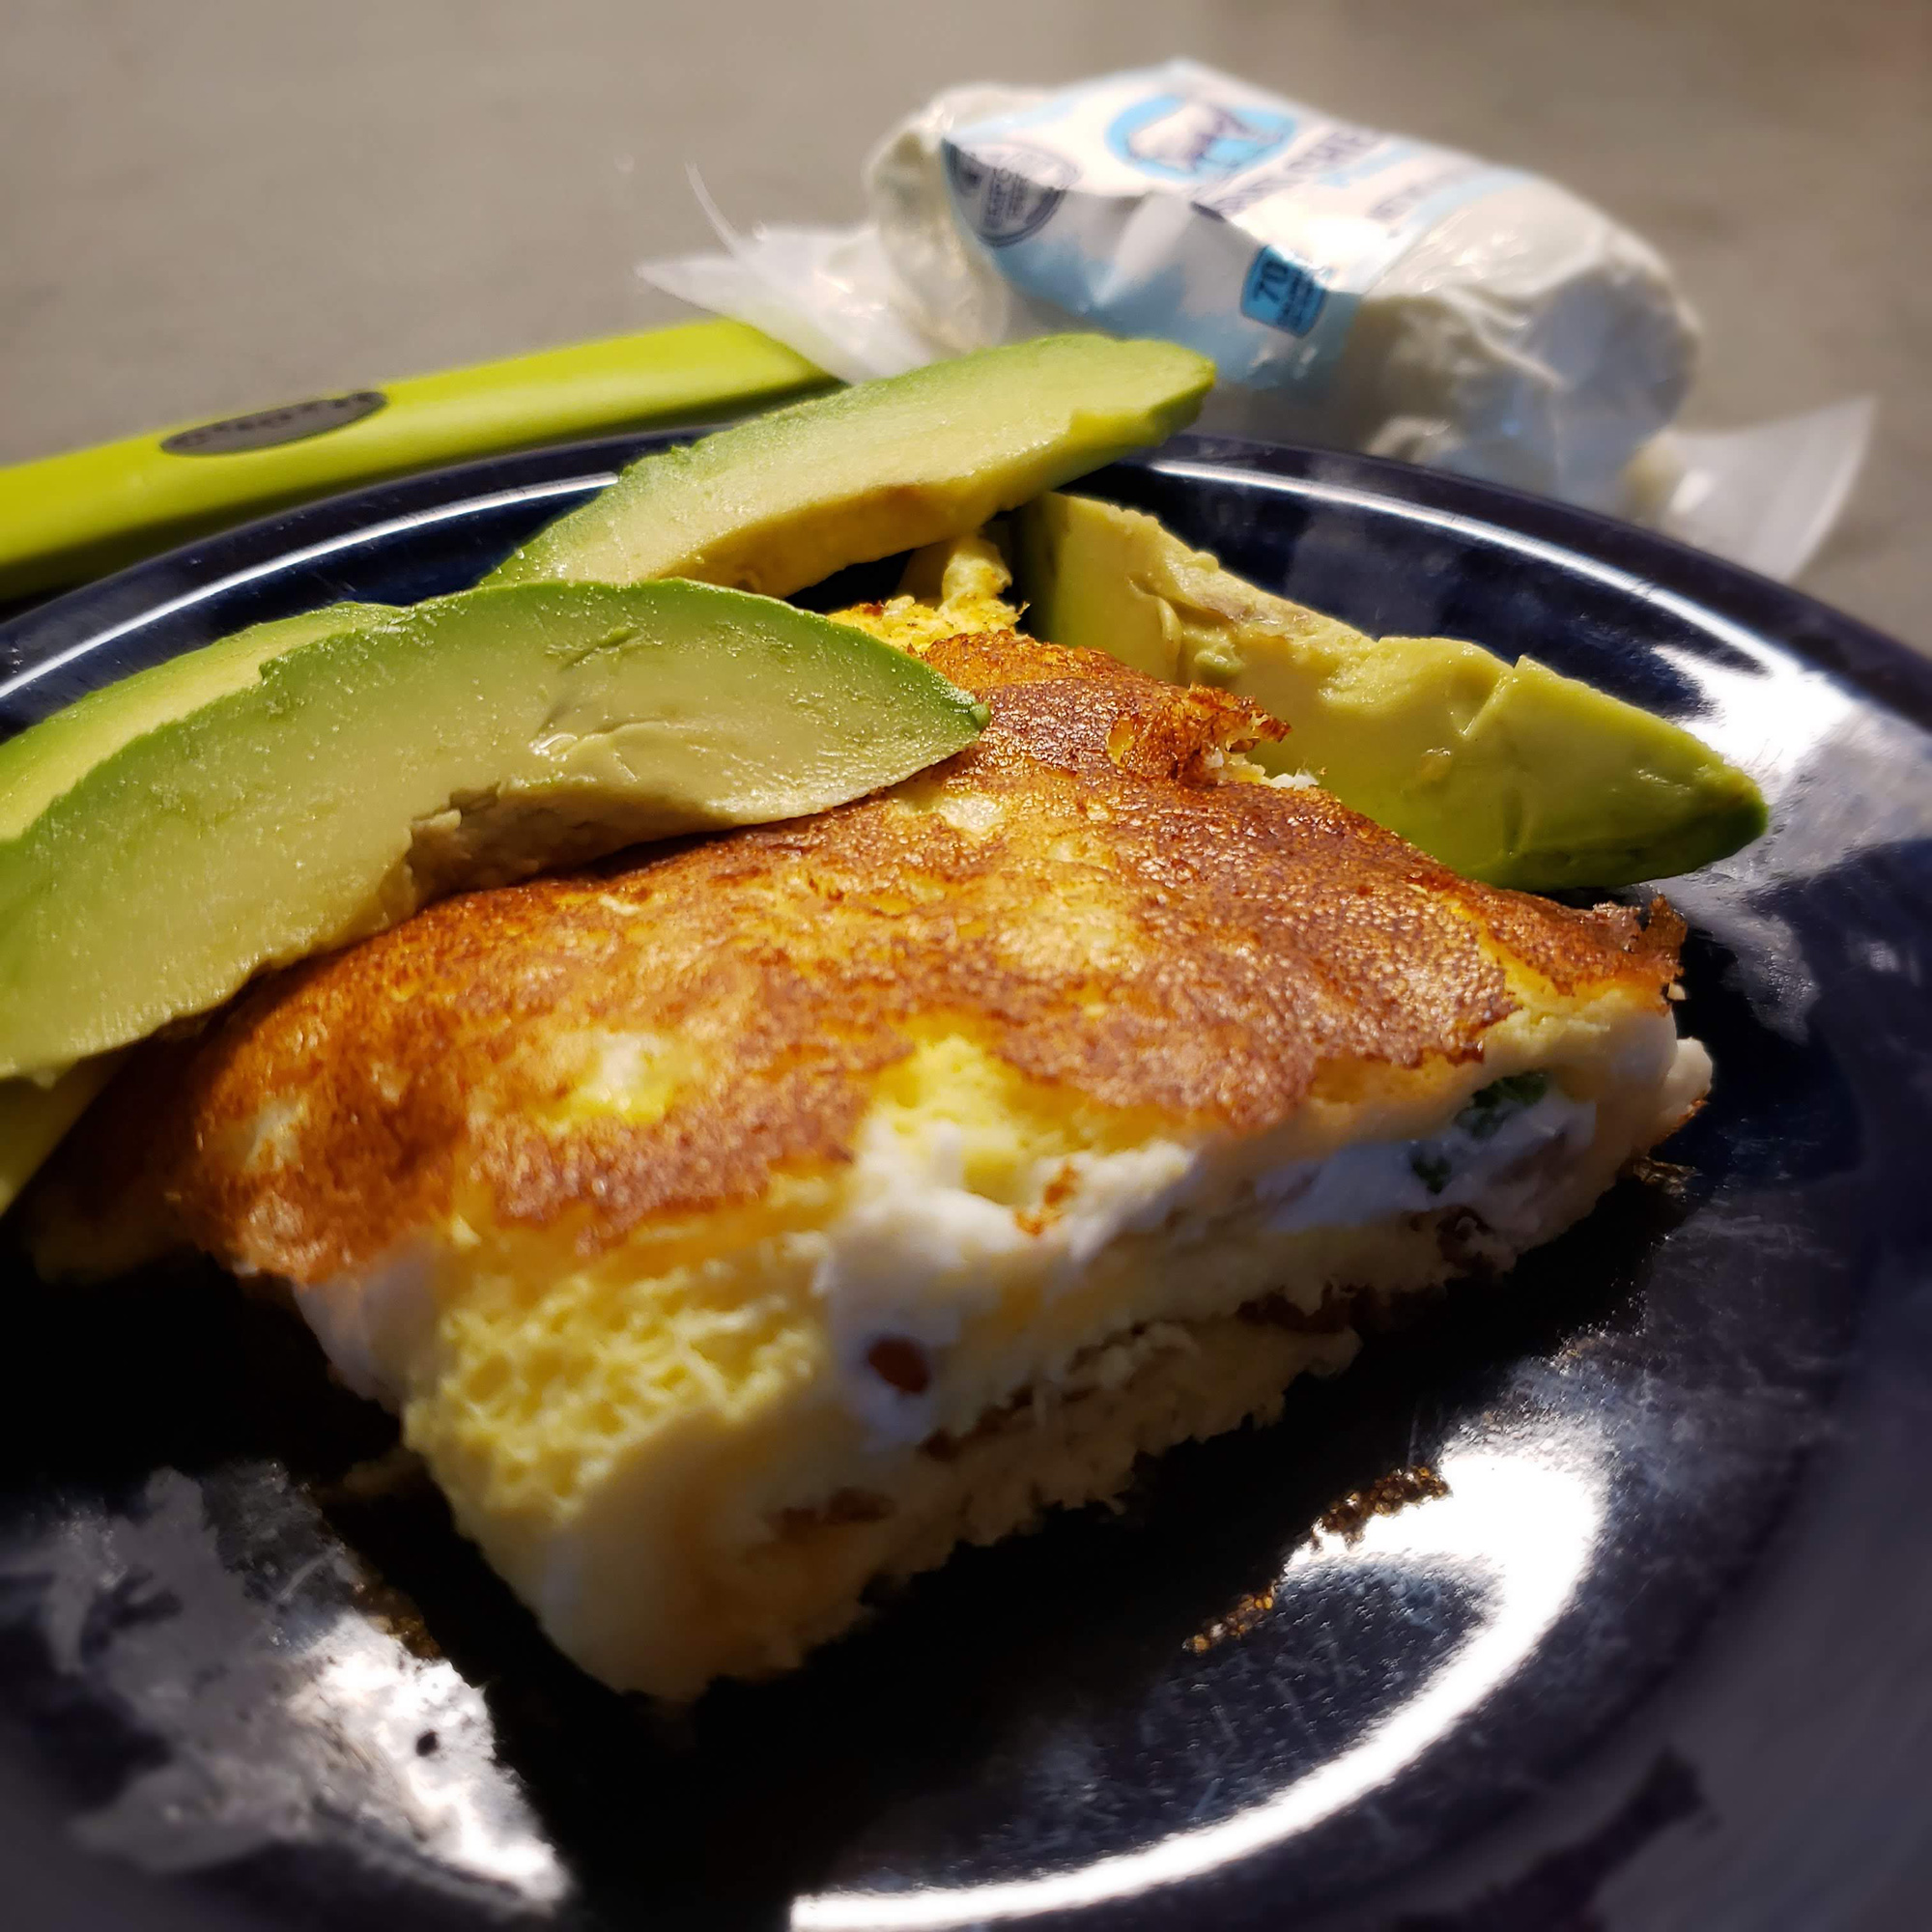 Plated omelette with avocado slices